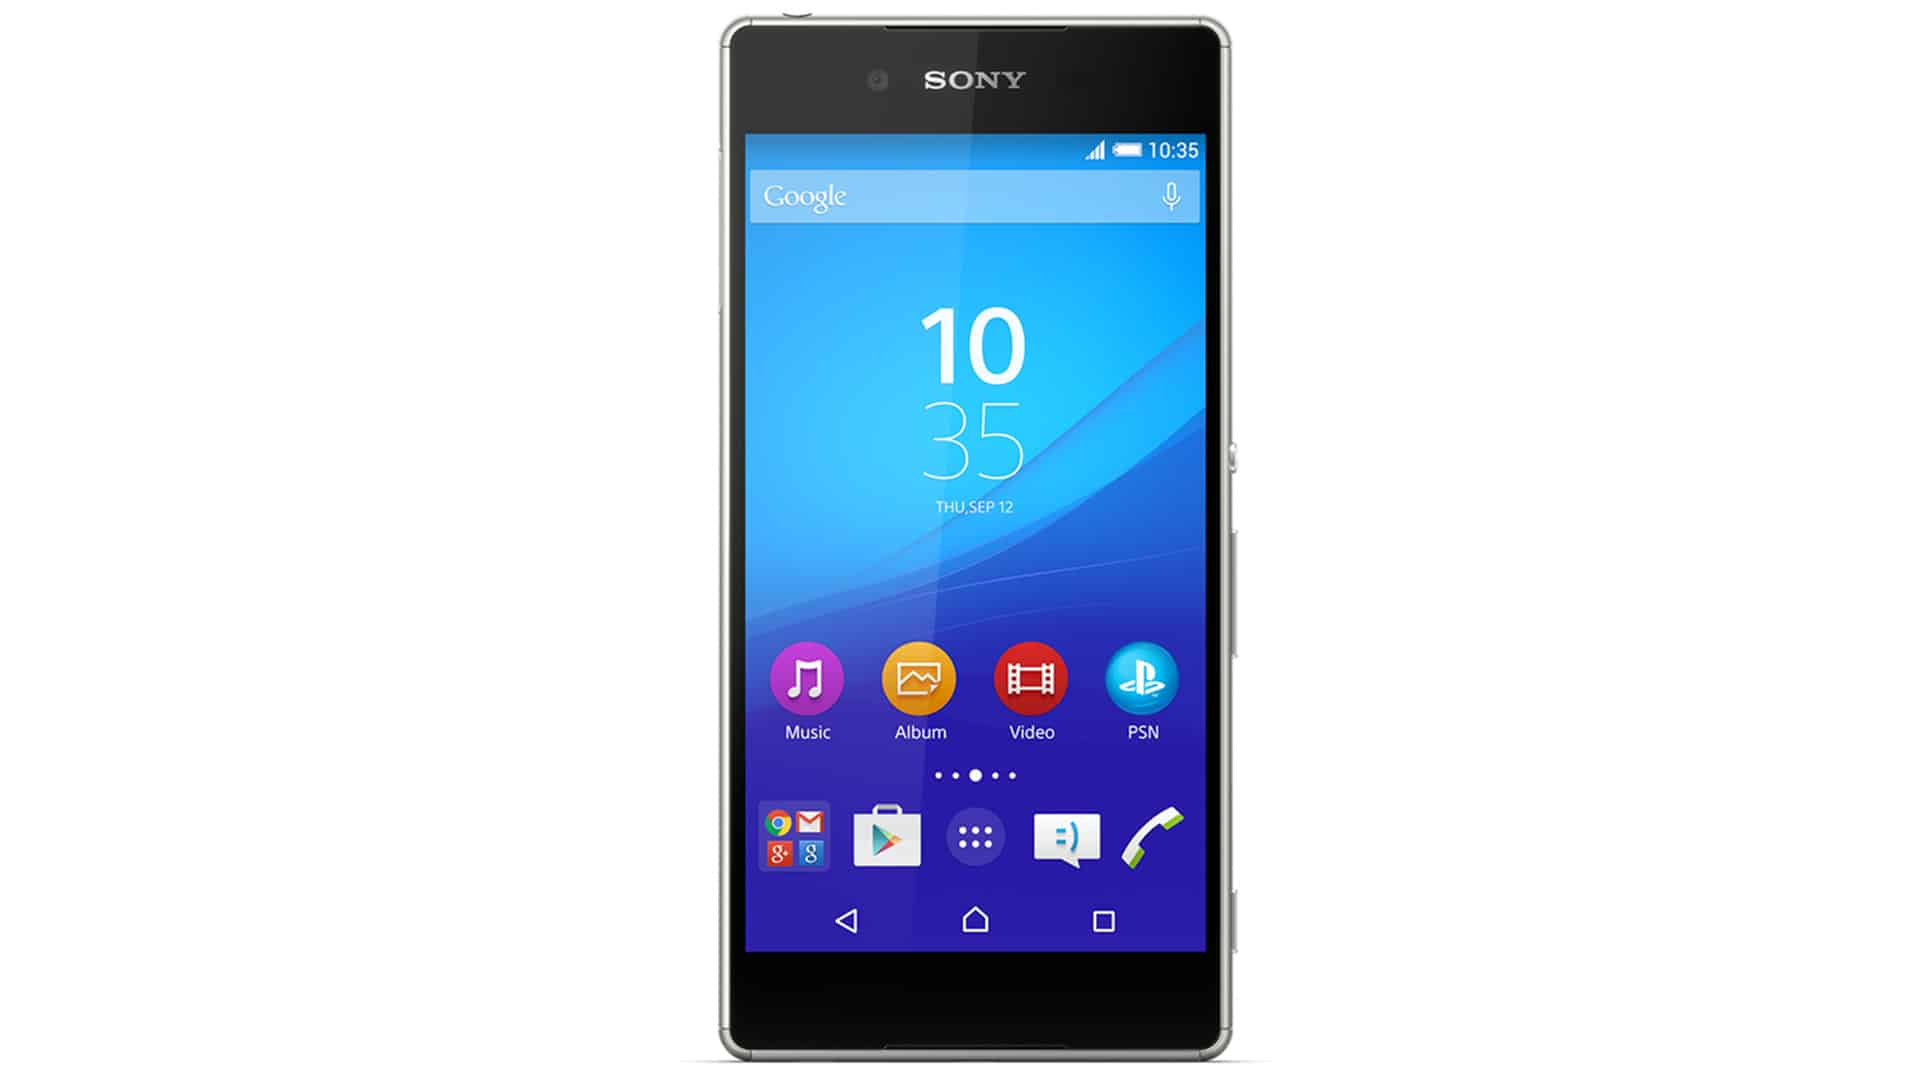 Sony Xperia Z4 Black 5.2 inch HD Screen